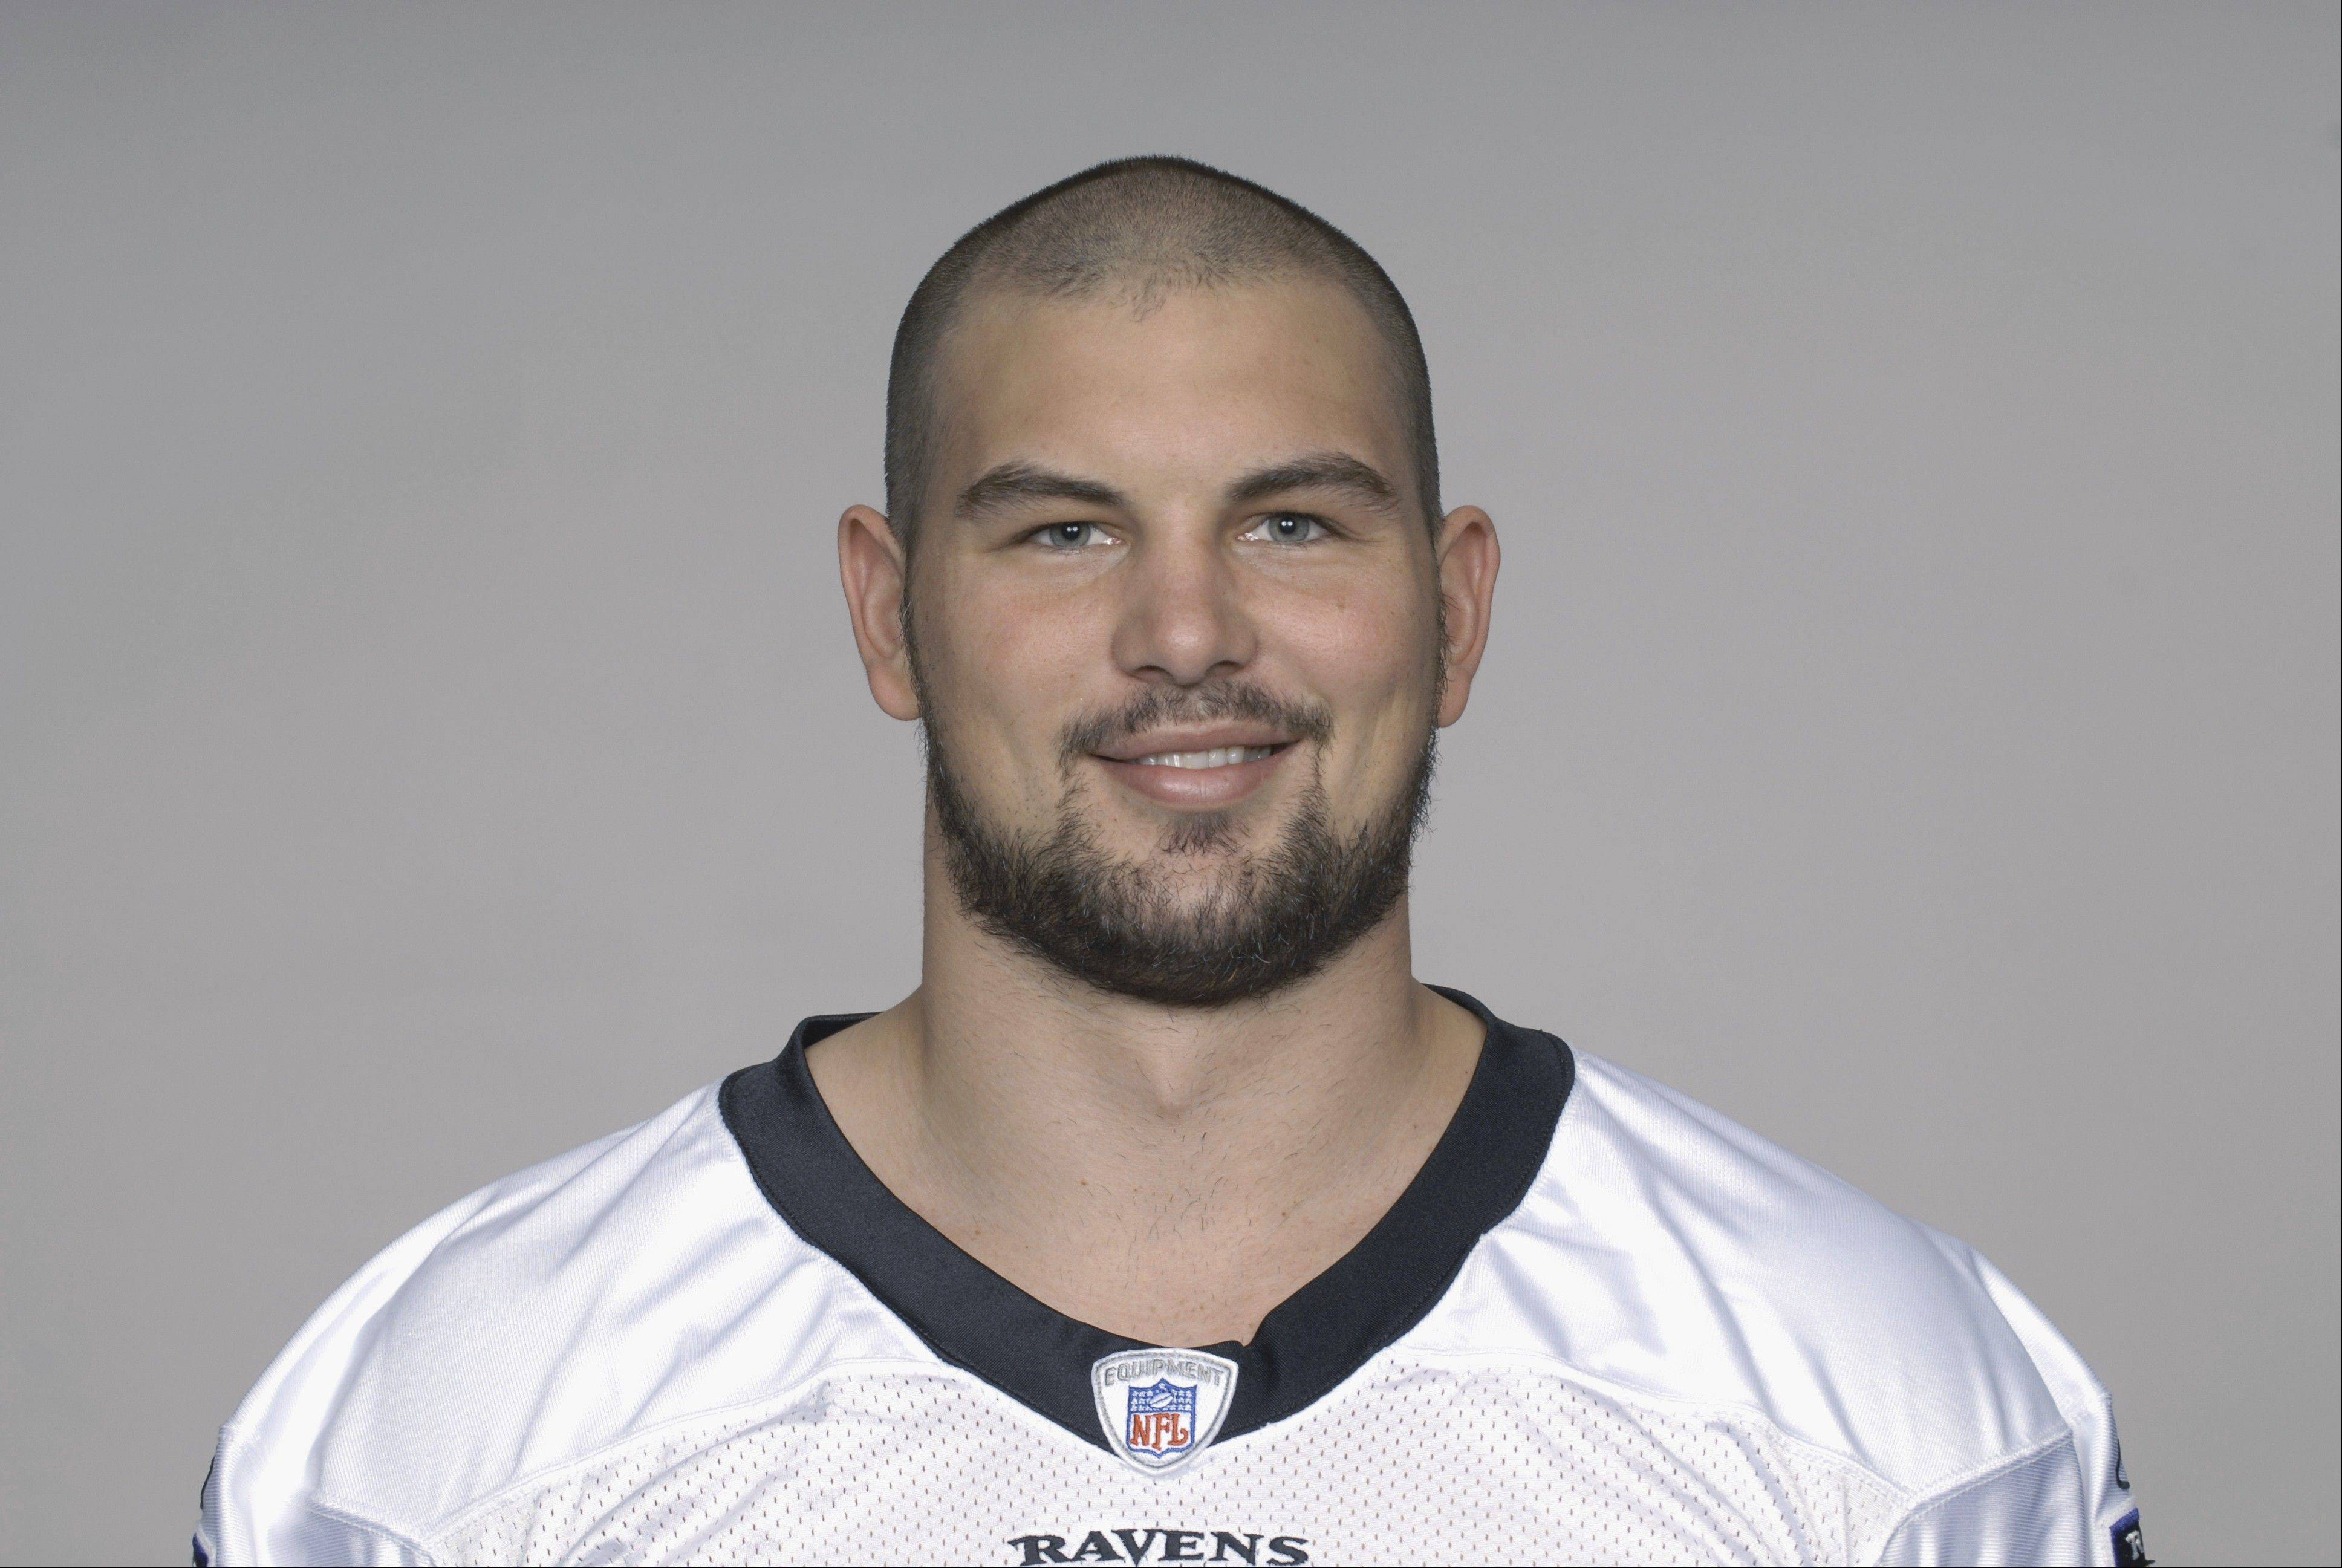 A former quarterback at Buffalo Grove High School, Tom Zbikowski was a special teams star and backup safety for the Baltimore Ravens before joining the Indianapolis Colts last season. Now he's a member of the Bears.